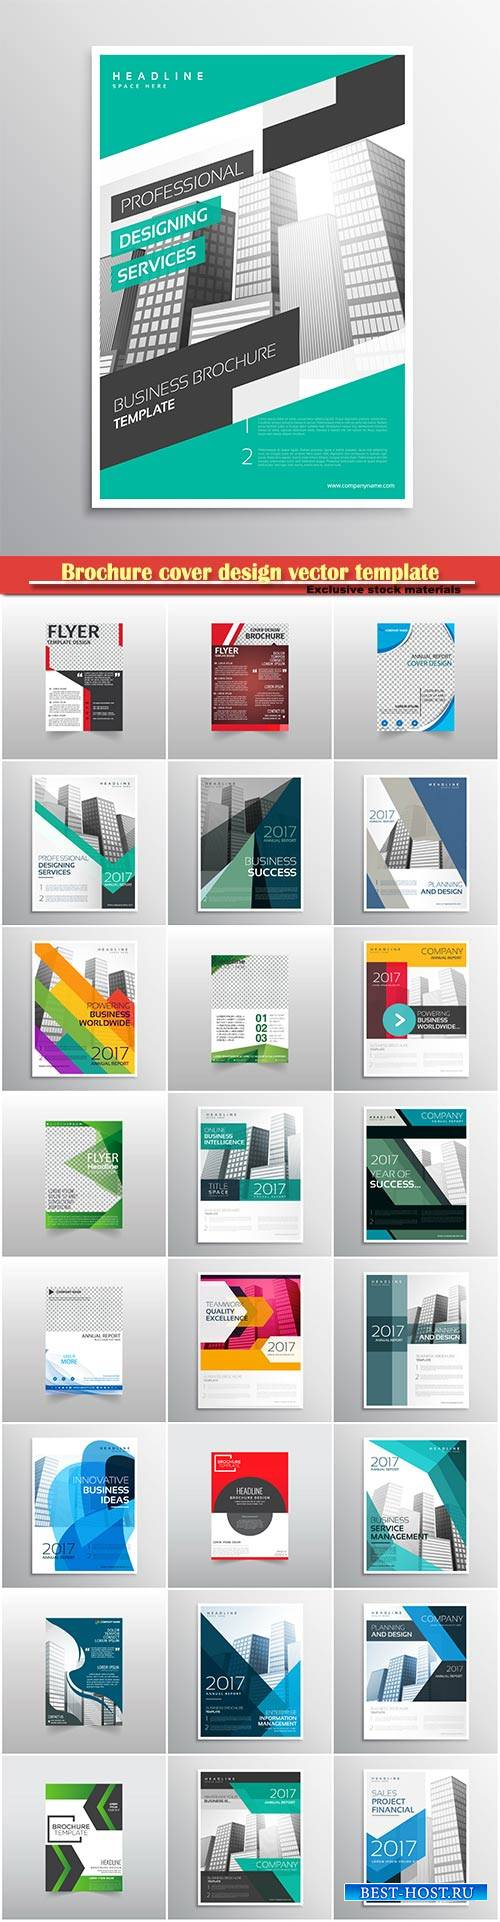 Brochure cover design vector template # 18